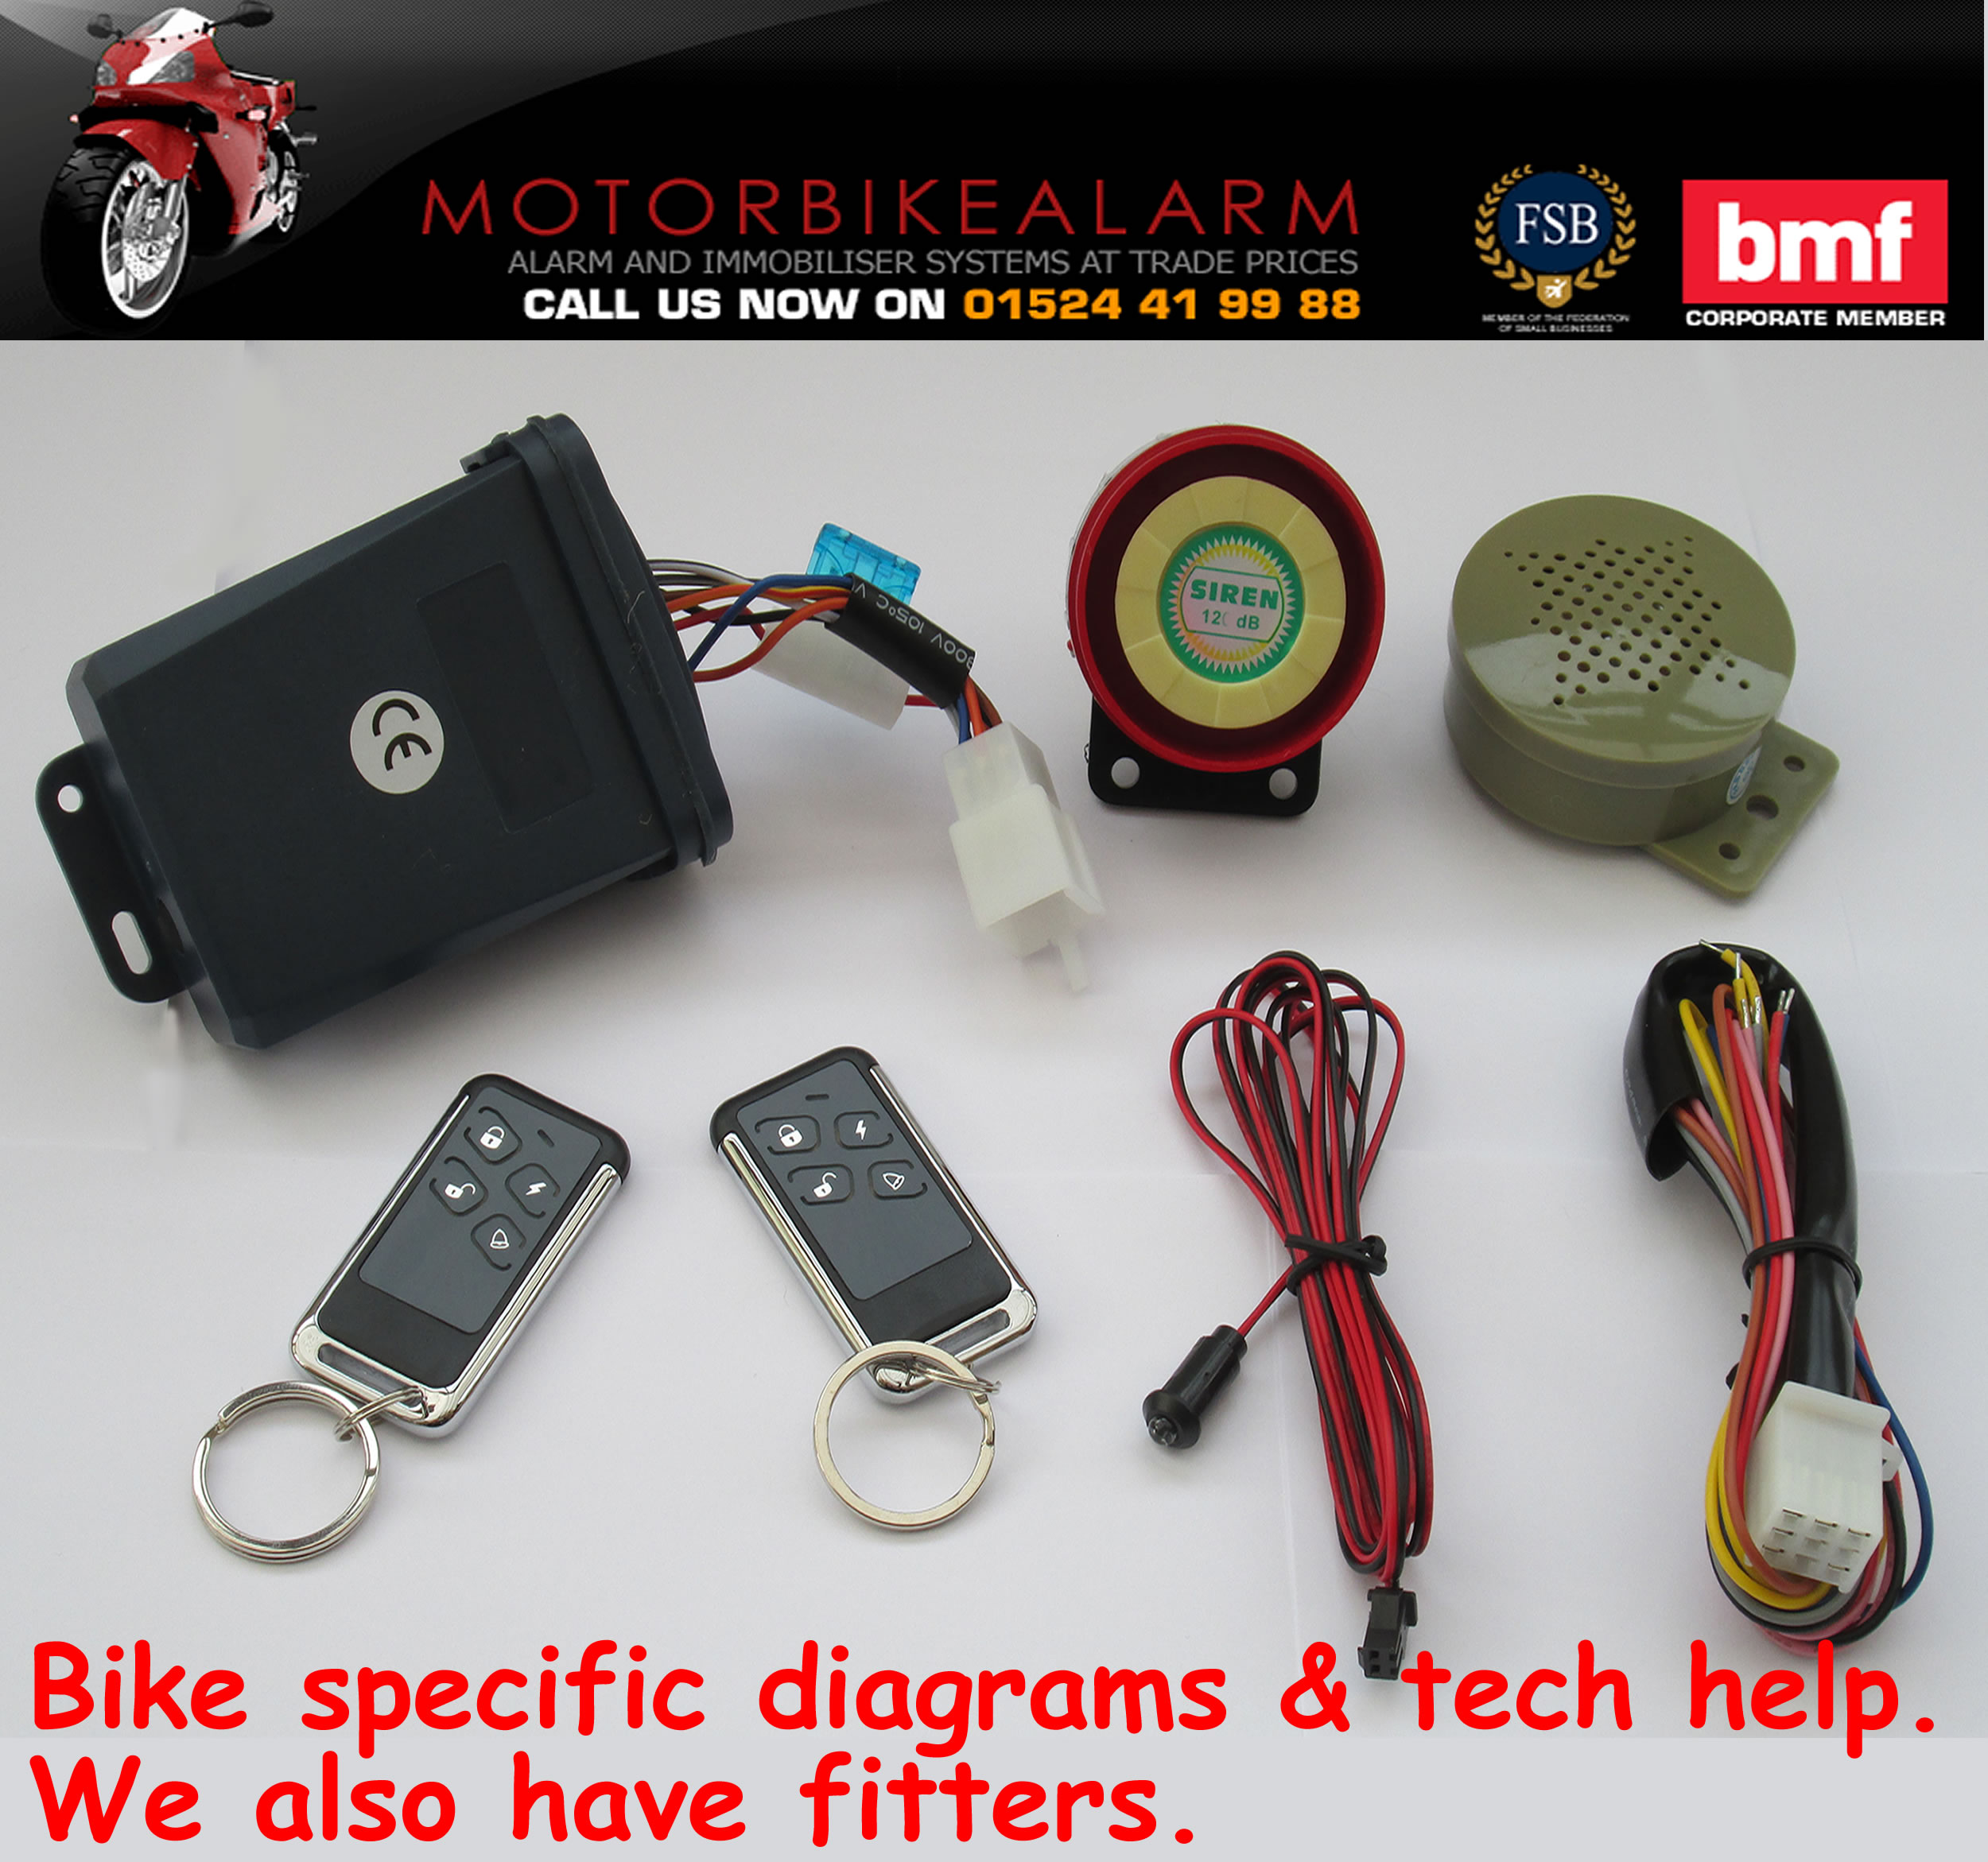 NCS C-11 Talking Motorbike Alarm and Immobiliser System ...